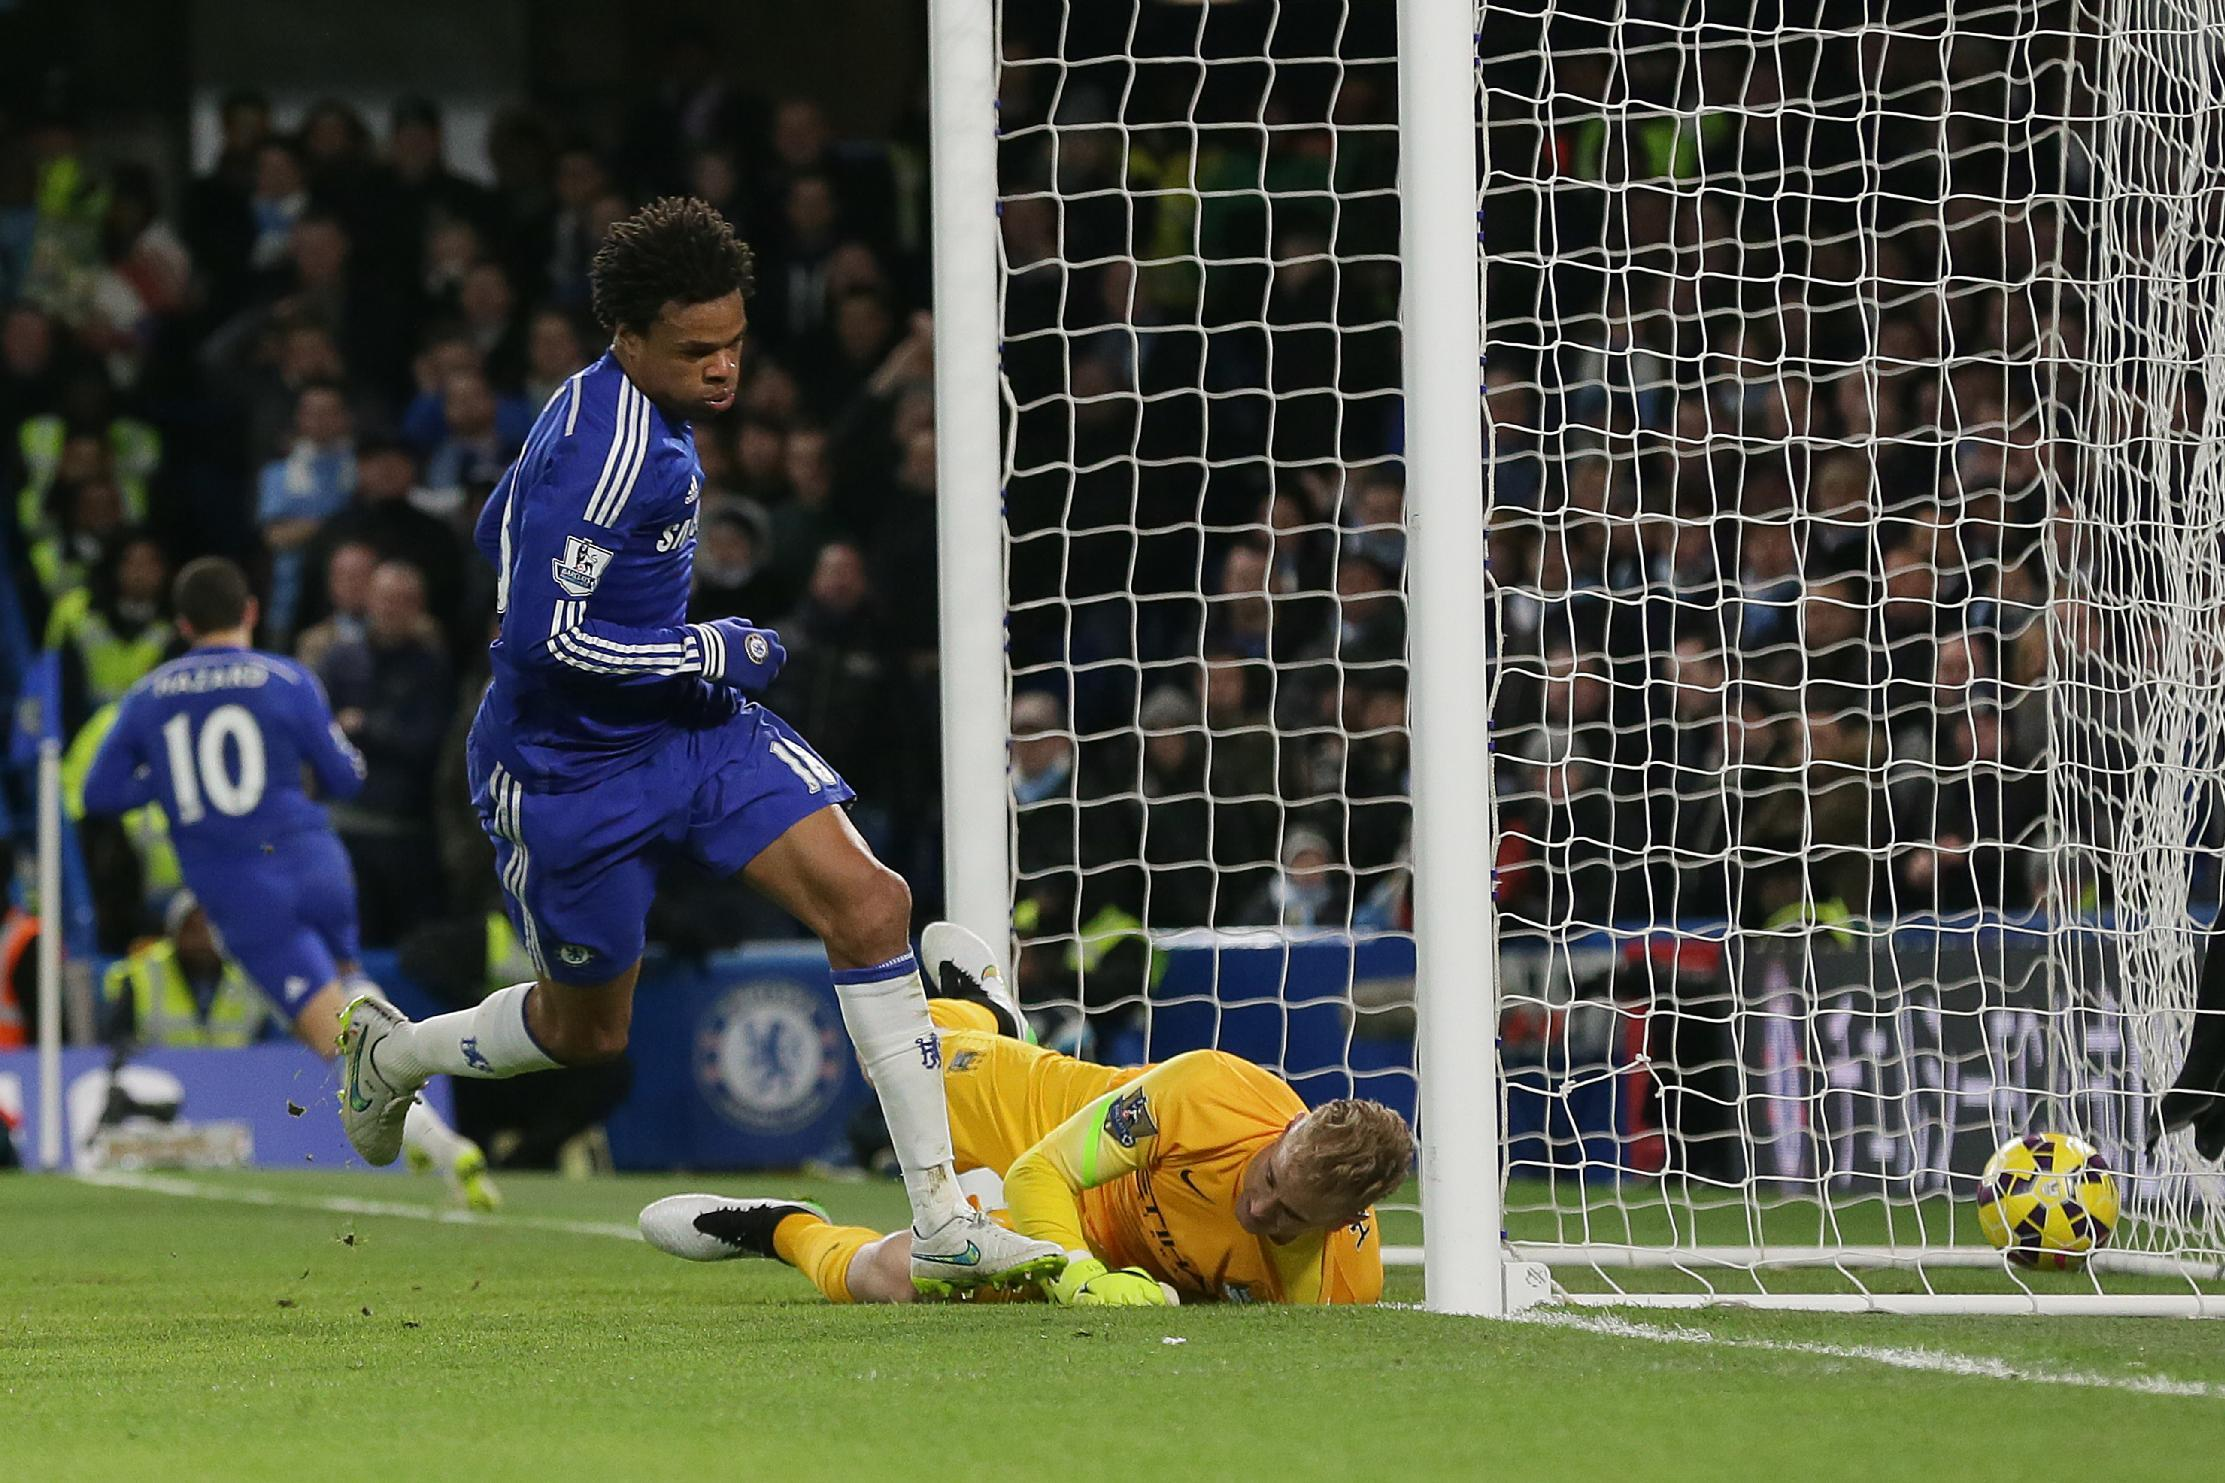 Chelsea draws with Man City; Madrid rolls without Ronaldo